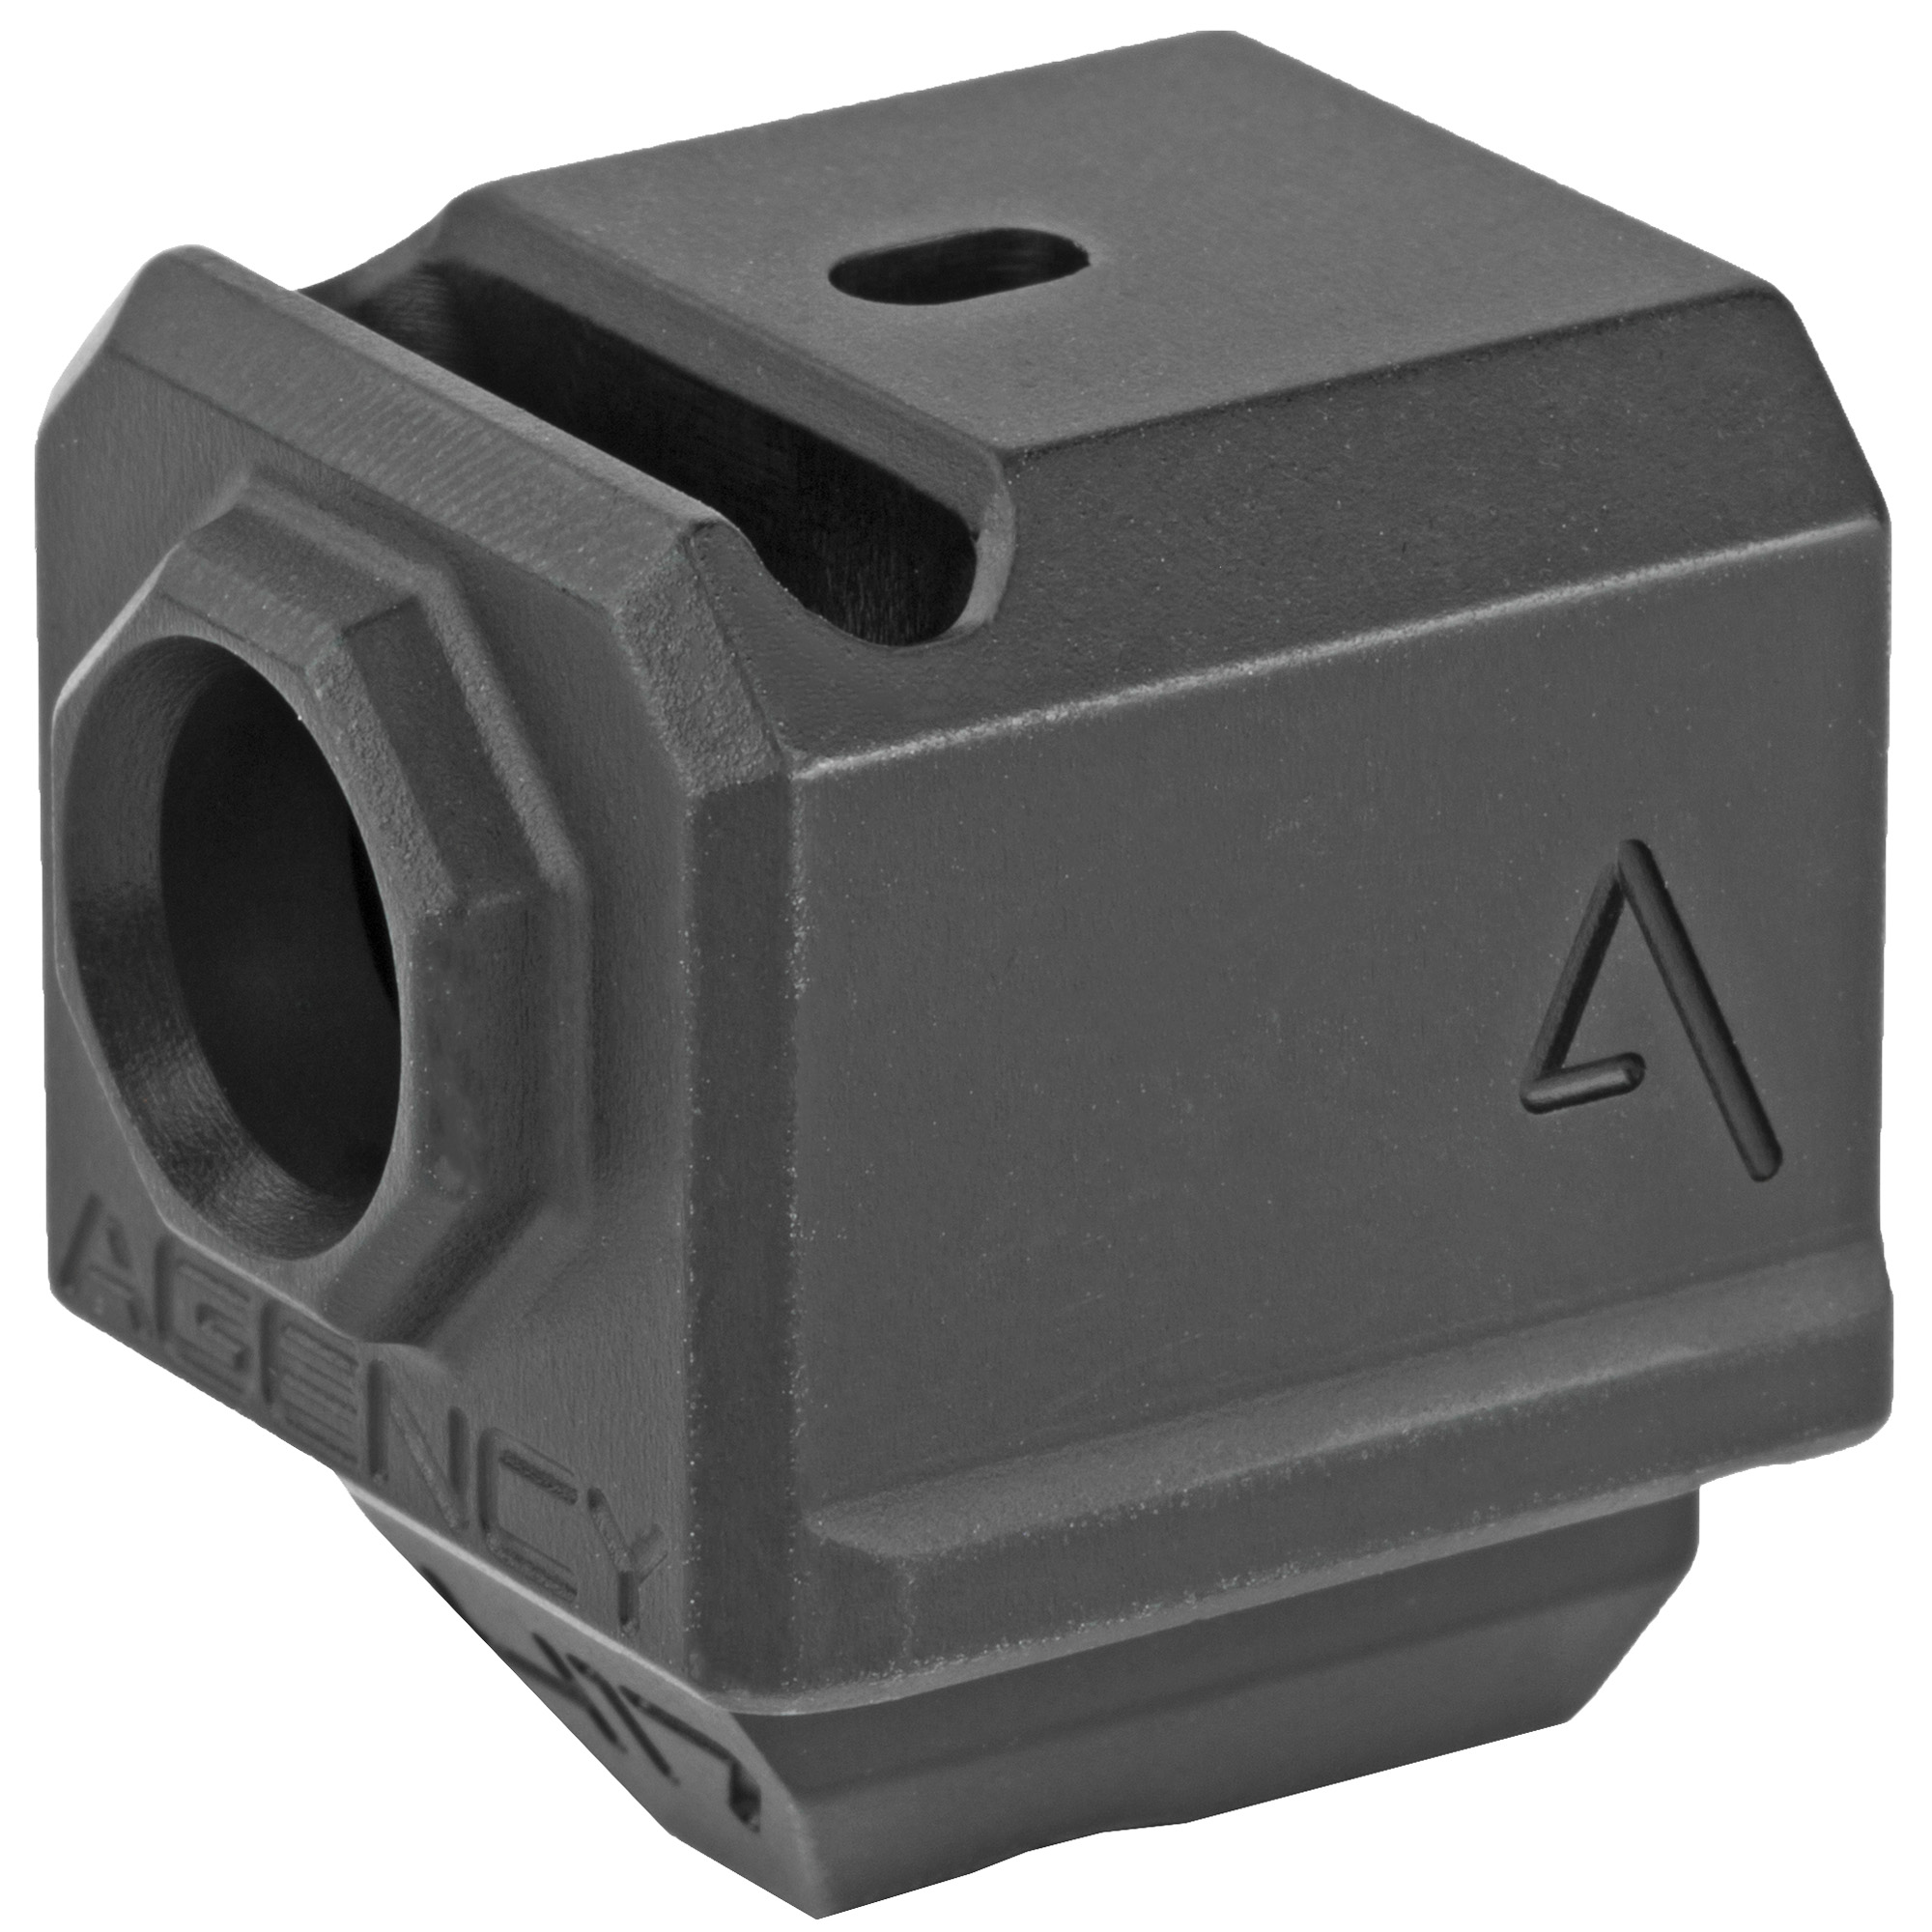 """The Agency Arms 417 Compensator is threaded with the standard 1/2x28 thread pitch. It features a single top venting port and it also features a front sight hole. It is designed to utilize the OEM recoil spring assembly and the front sight hole allows you to transfer your existing front sight from your slide to the comp. Compatible with the 17""""19 and 34."""